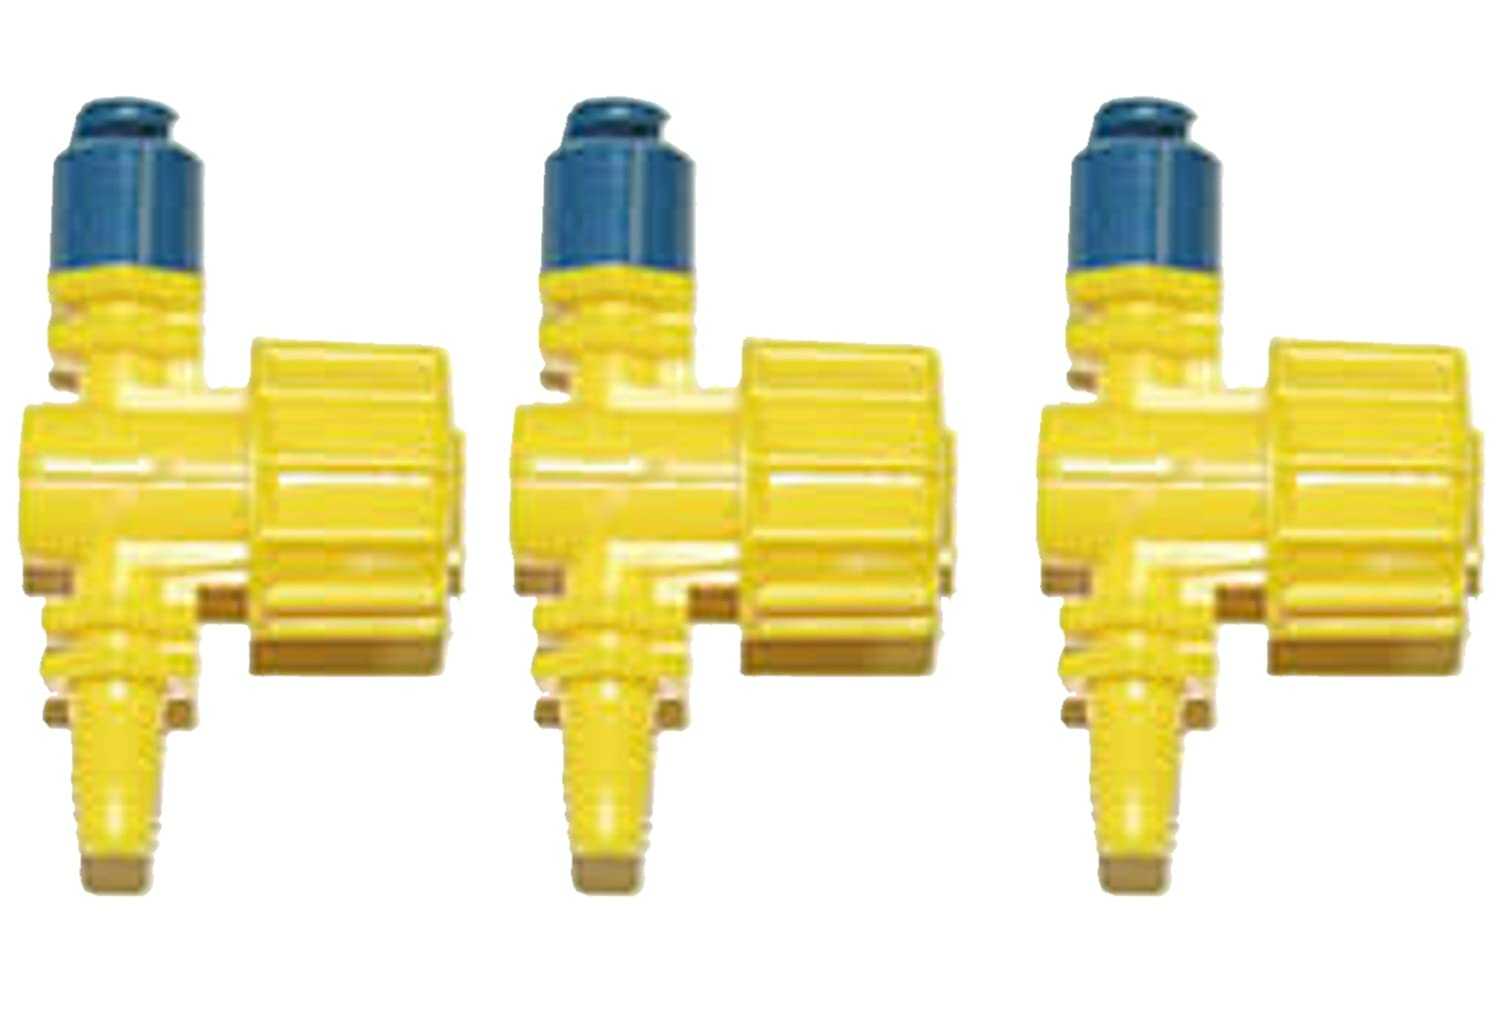 3 X ADJUSTABLE SPRINKLERS ,HALF CIRCLE SPRAY PATTERN(compatible with hozelock 2794) Antelco